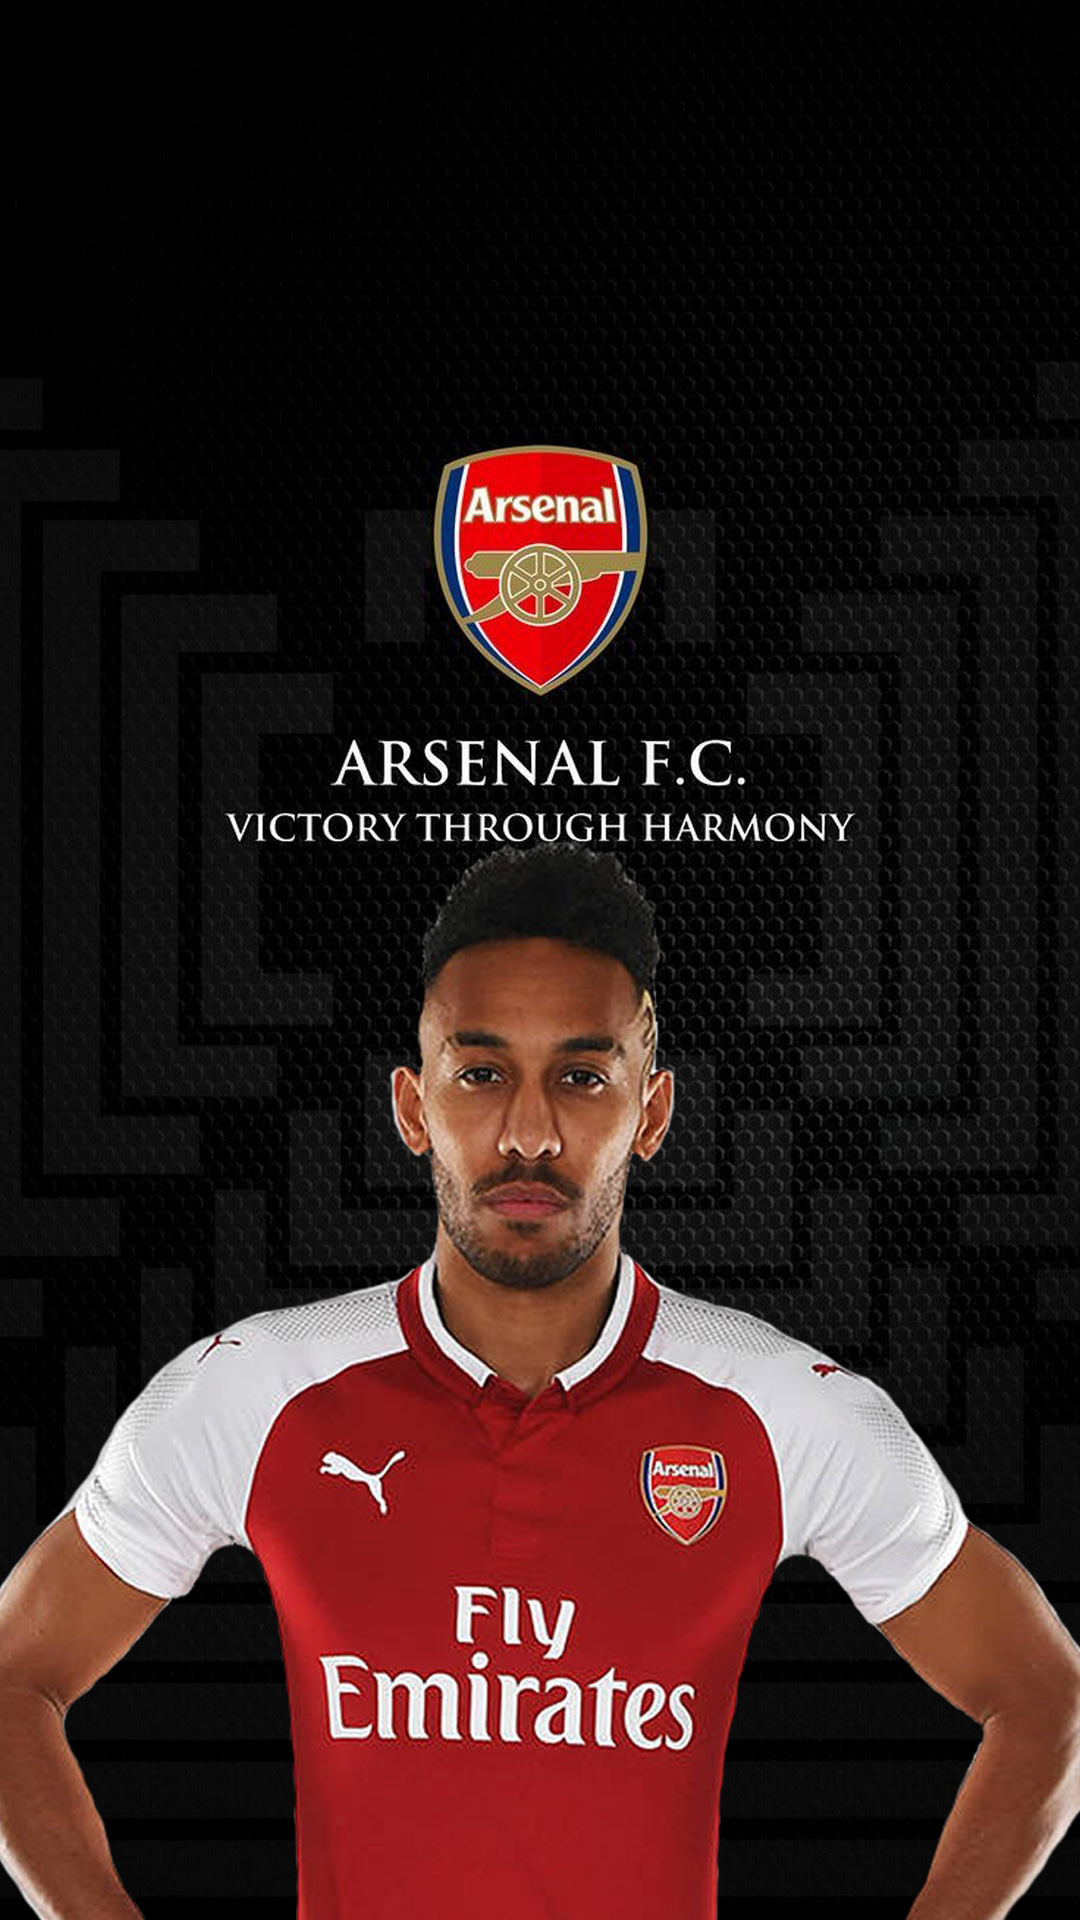 arsenal players wallpapers posted by